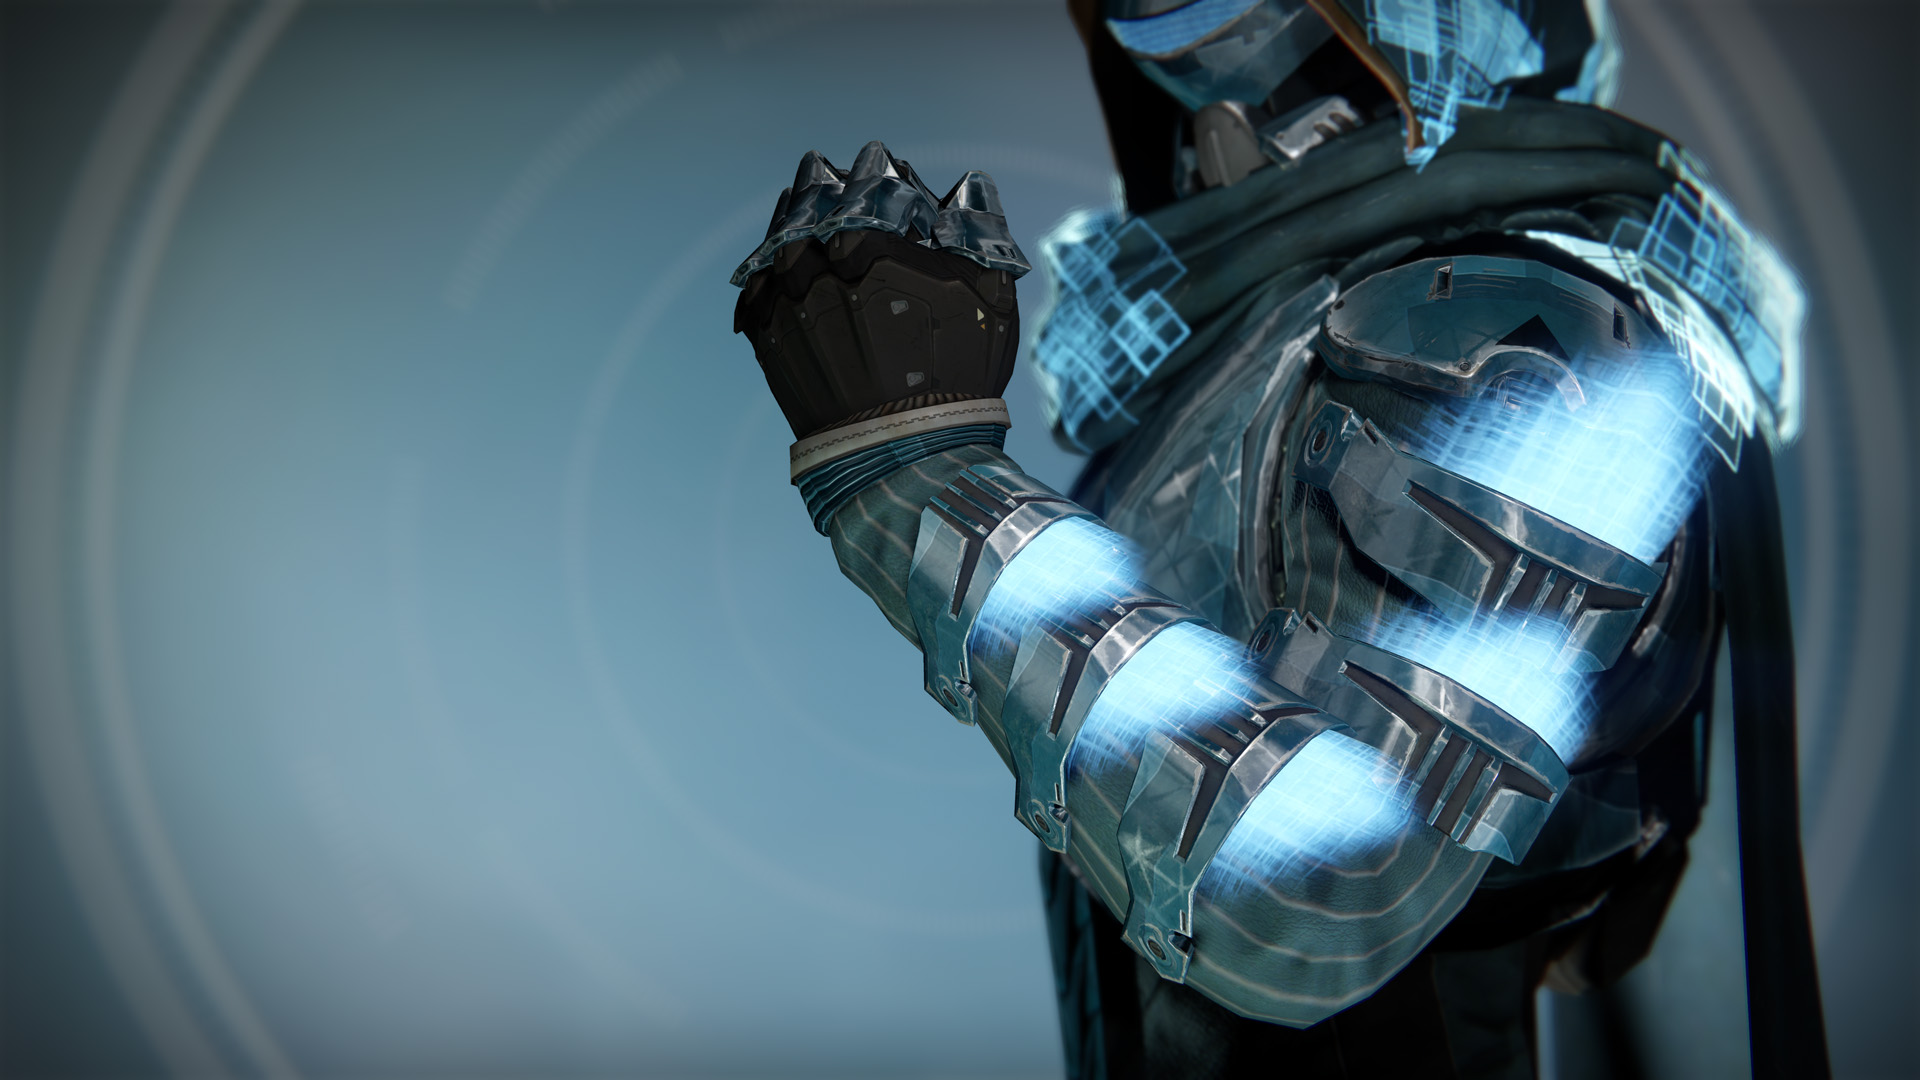 Destiny 2 Kings Fall Wallpaper Destiny Age Of Triumph Here S A Look At Raid Armor From